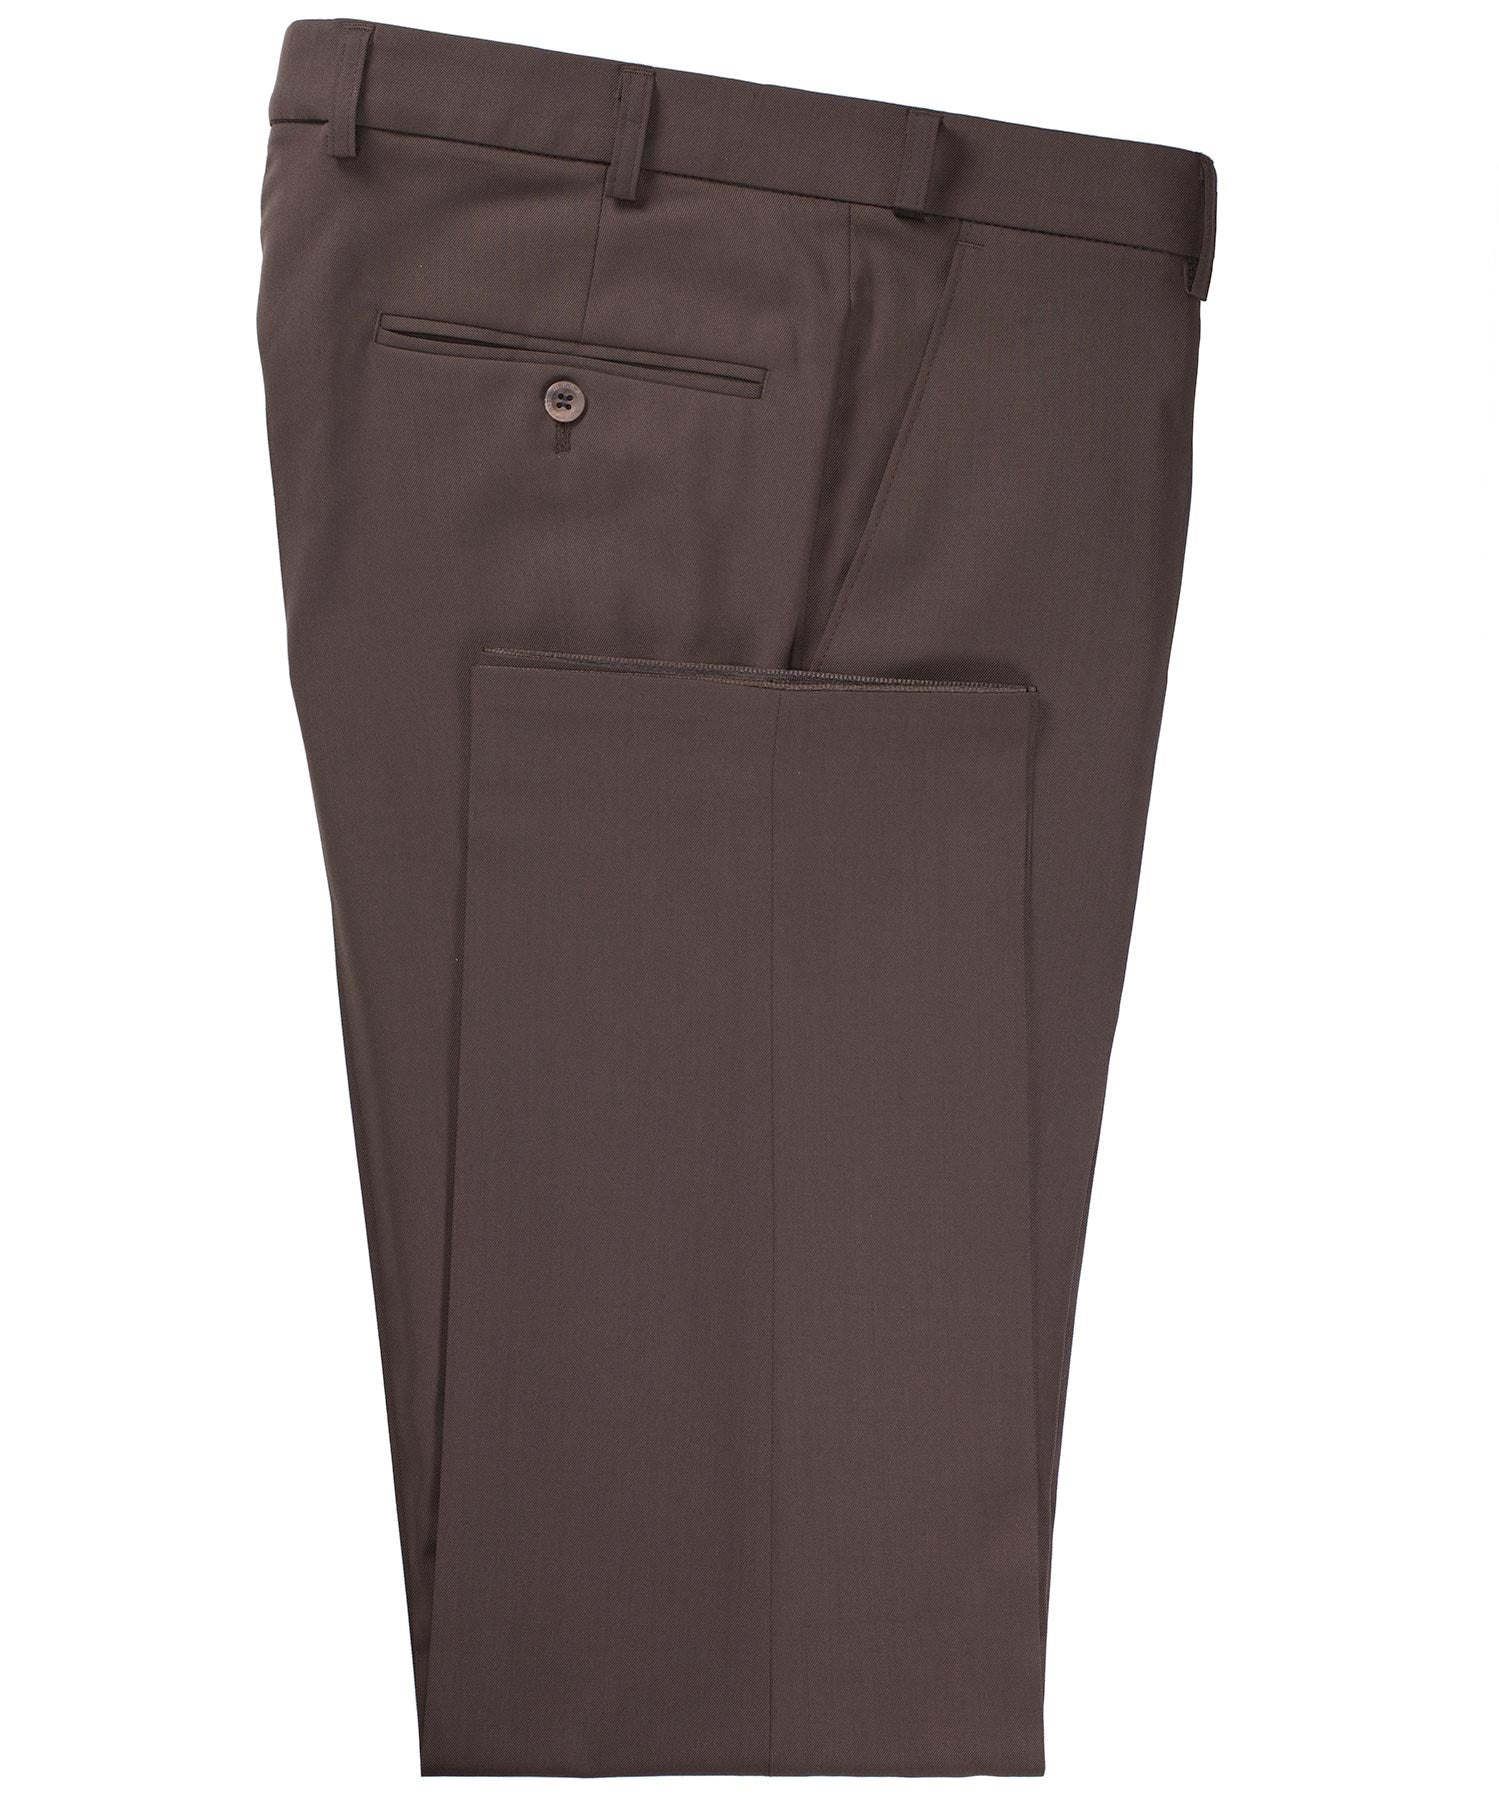 Madrid Cocoa Cafe Dress Pants